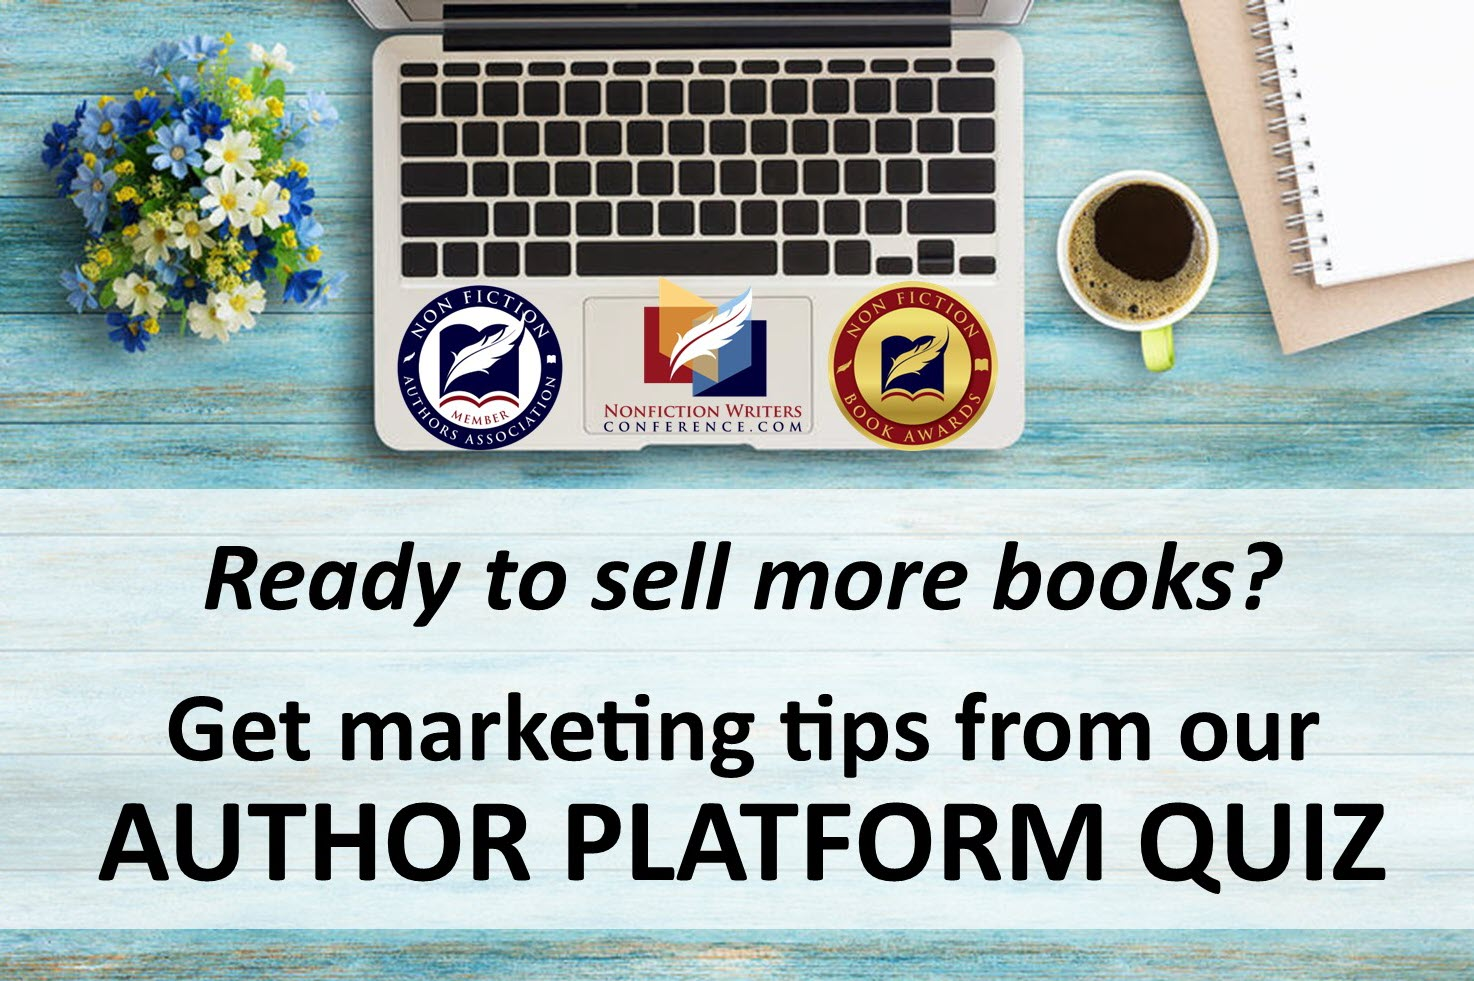 Author Platform Quiz